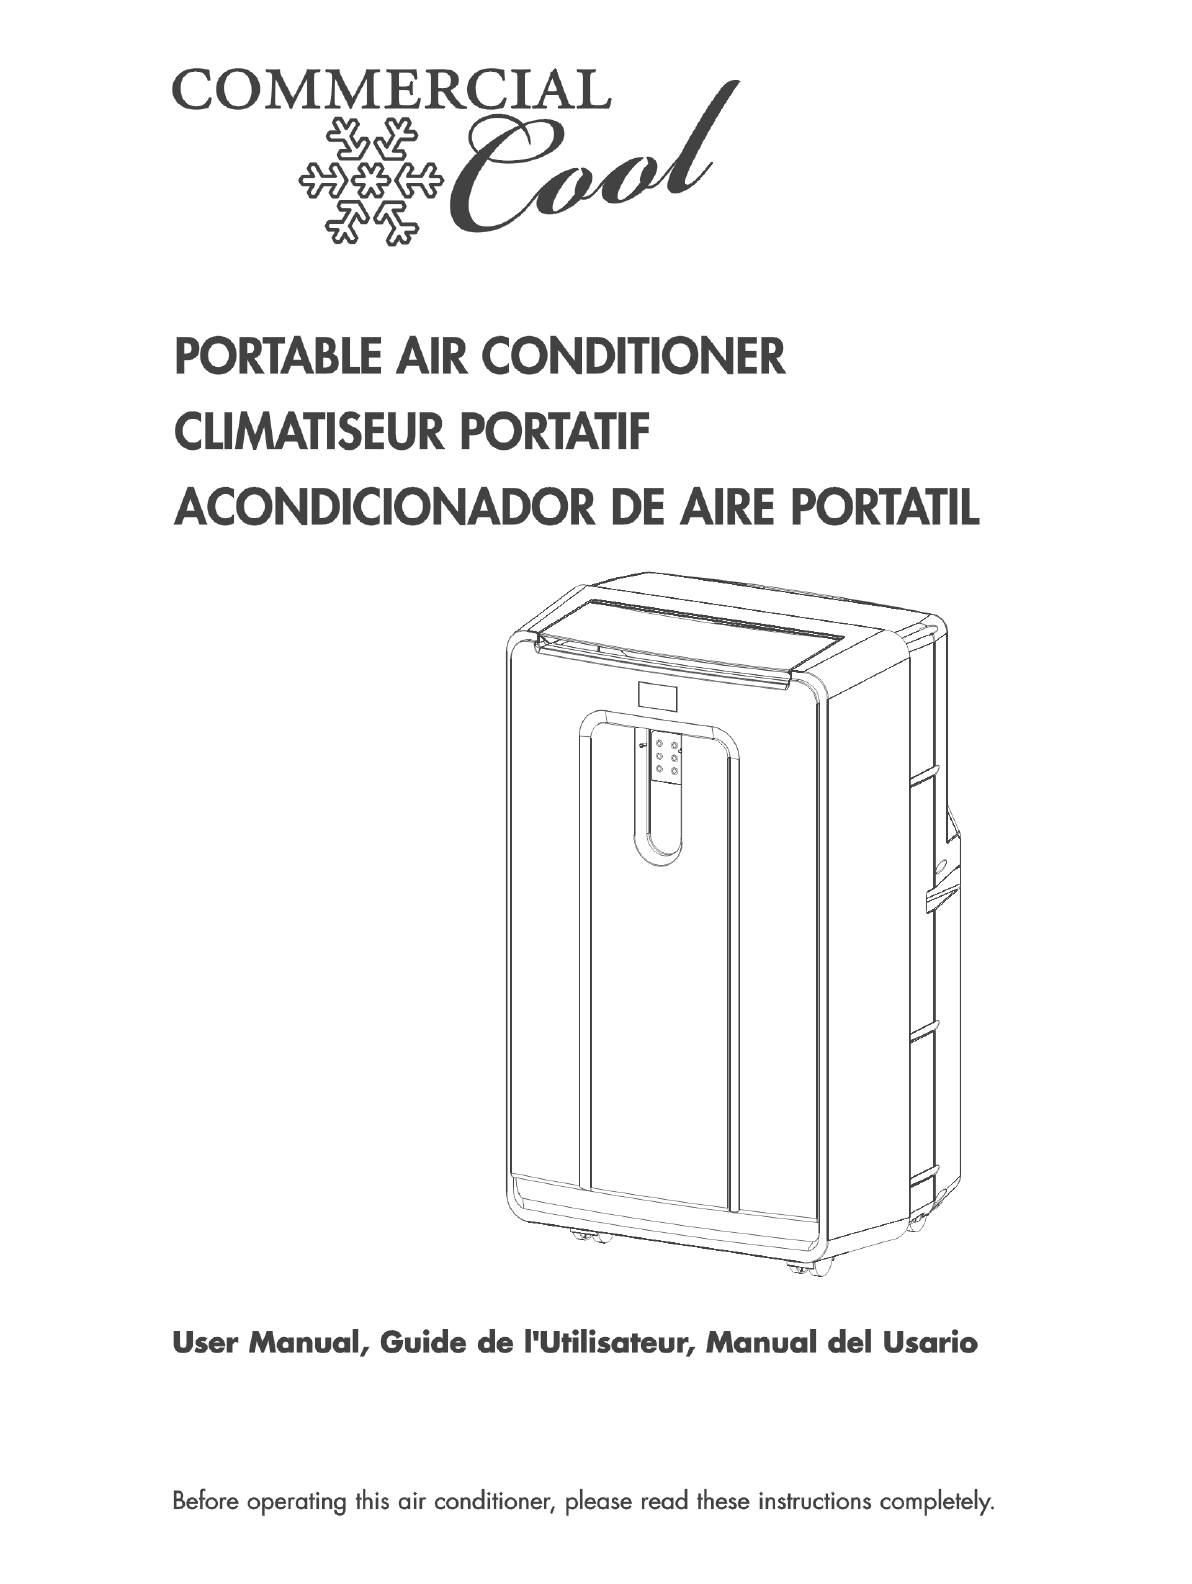 Koolking Portable Air Conditioner Instruction Manual Manual Guide